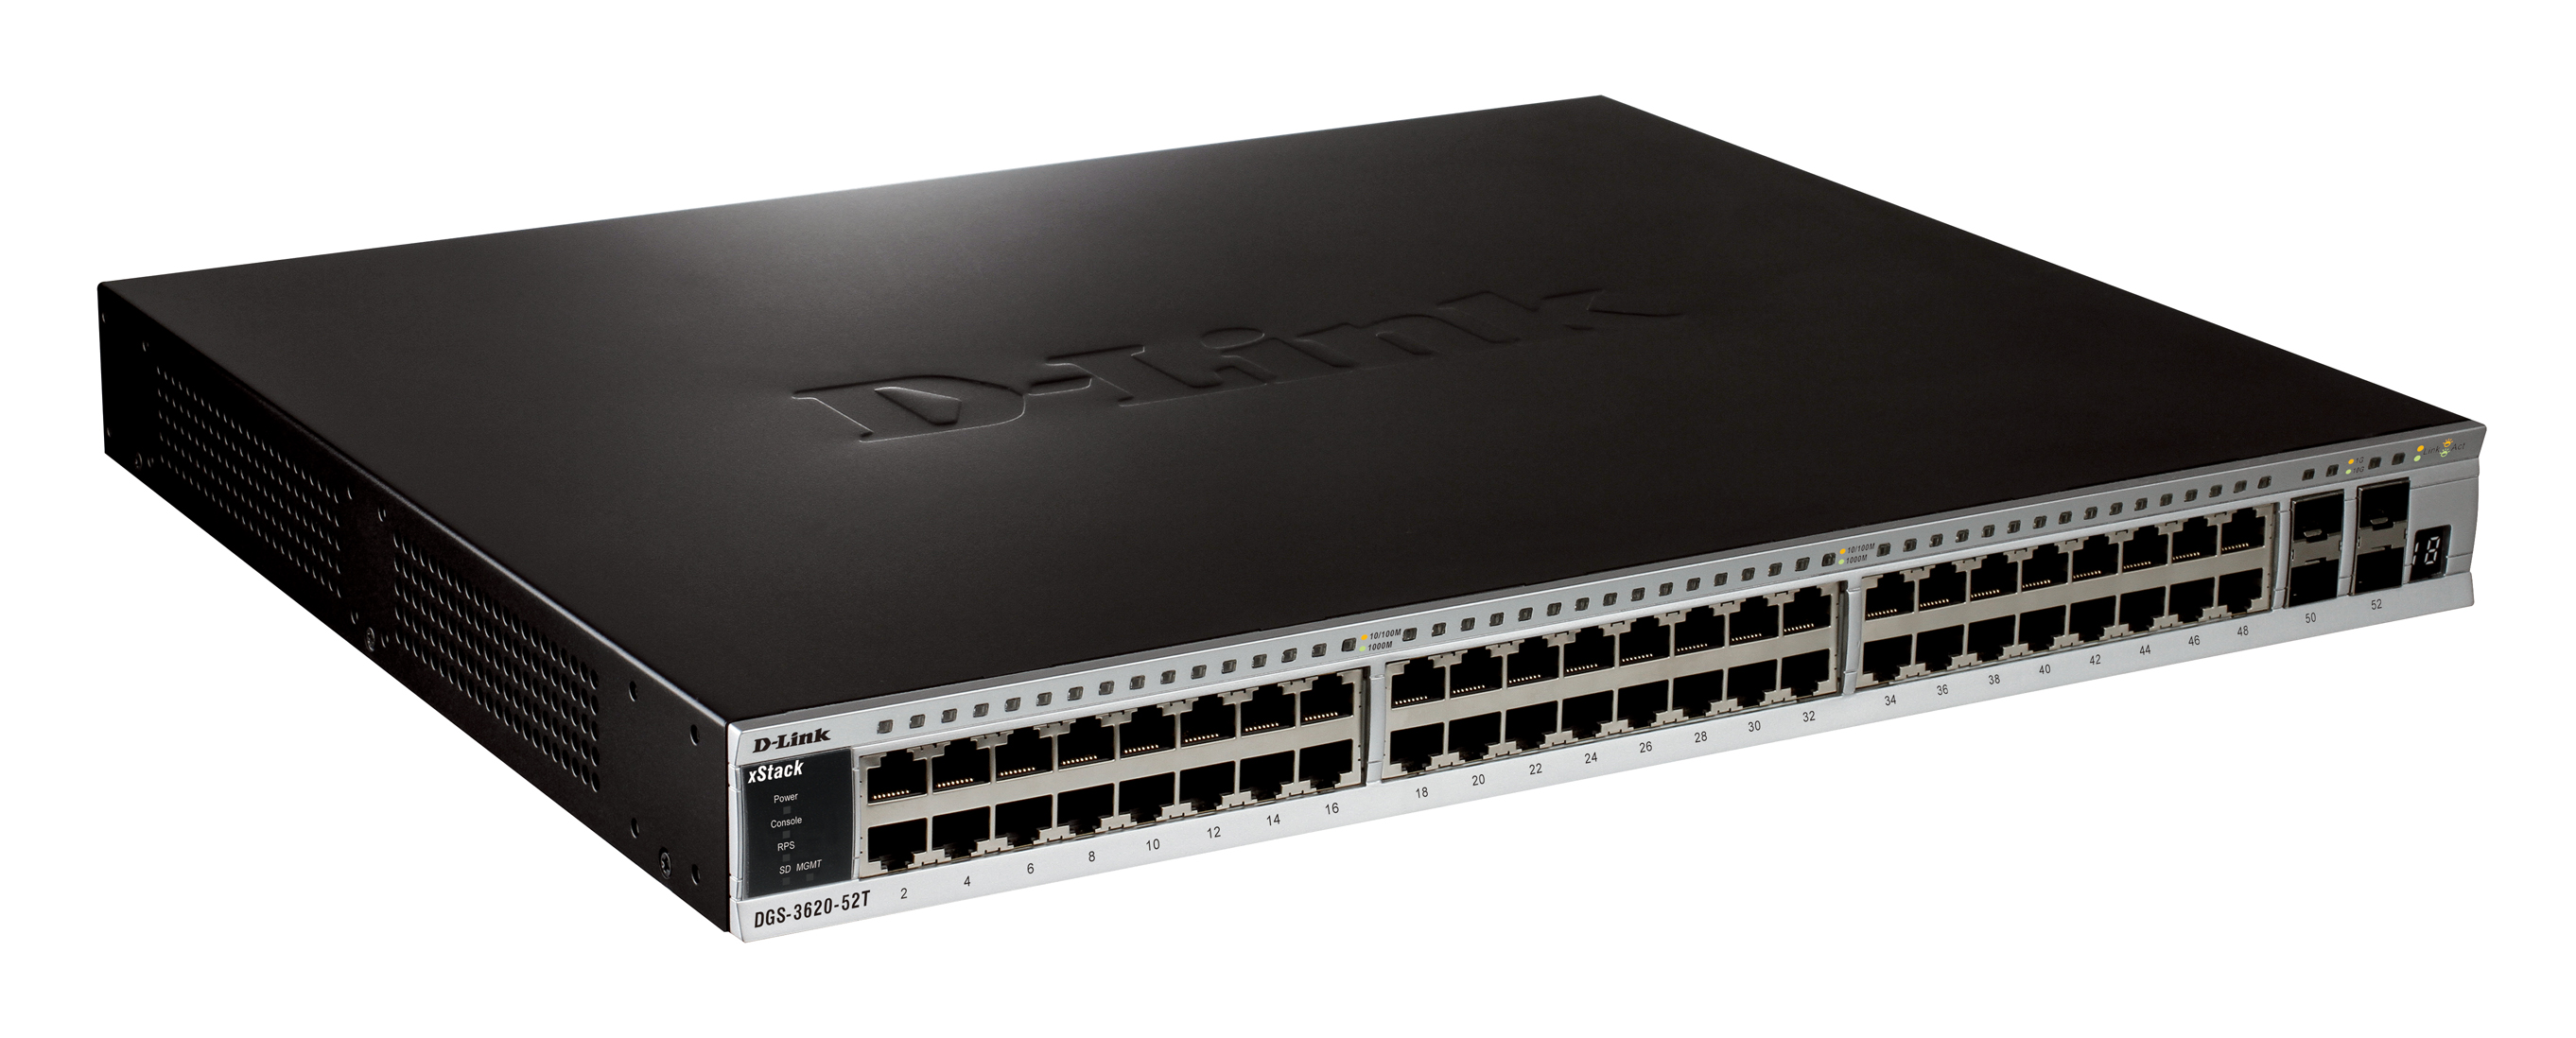 D-Link DGS-3620-52P-SI L3 Gigabit Switch X64 Driver Download